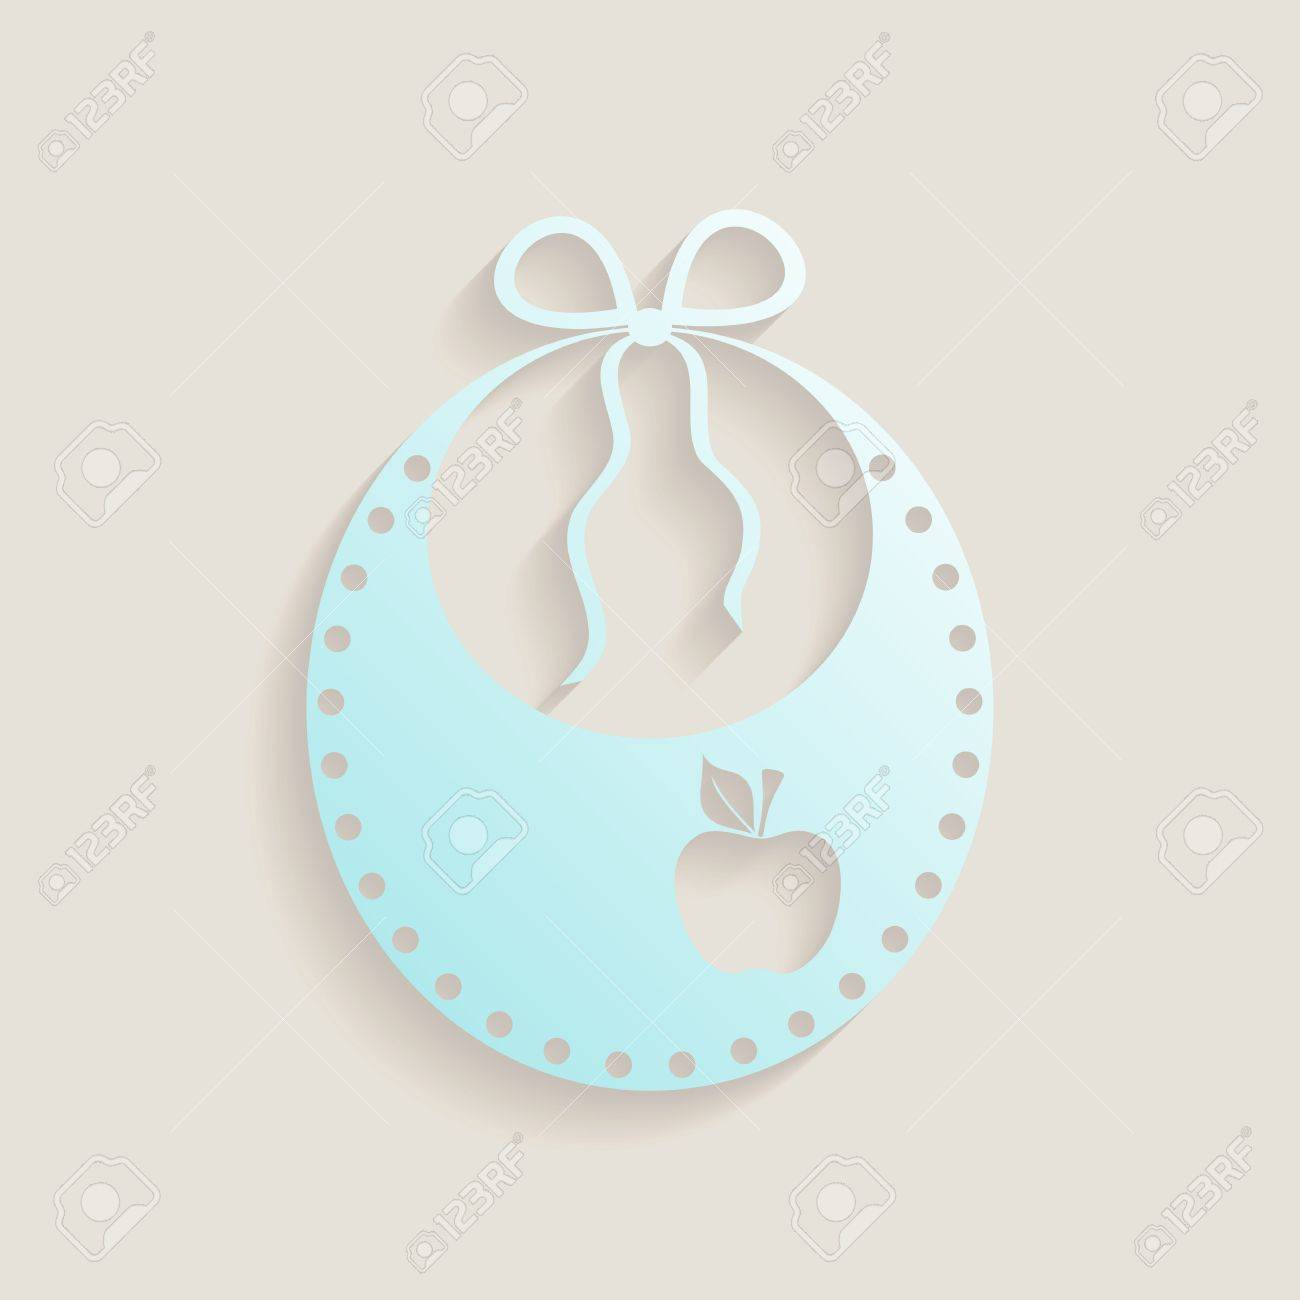 Simple baby shower invitation card with baby bib royalty free simple baby shower invitation card with baby bib stock vector 28924254 filmwisefo